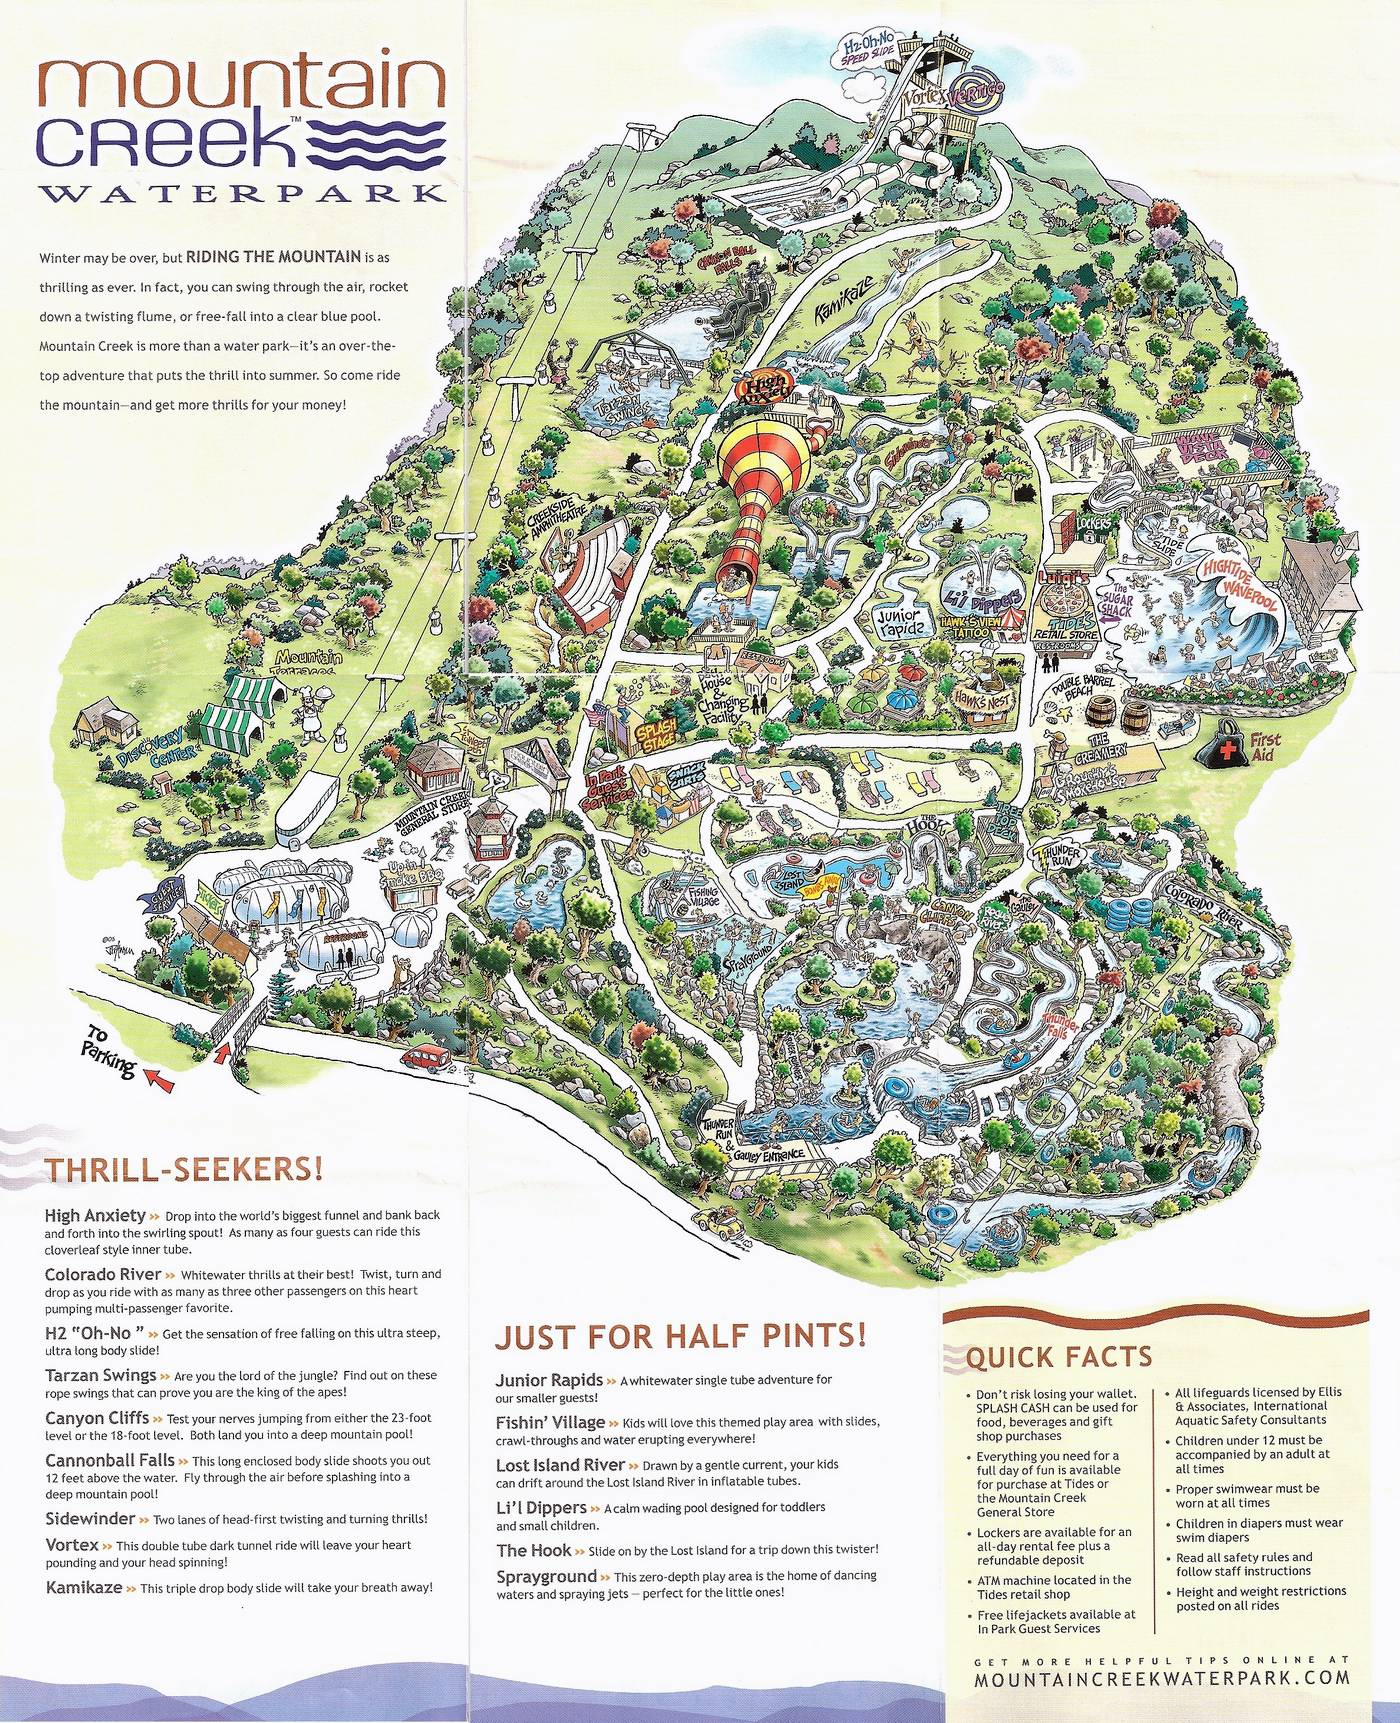 Mountain Creek Water Park Map Crapstravaganza Week 9: Winter Waterpark Week | The DoD3 Mountain Creek Water Park Map